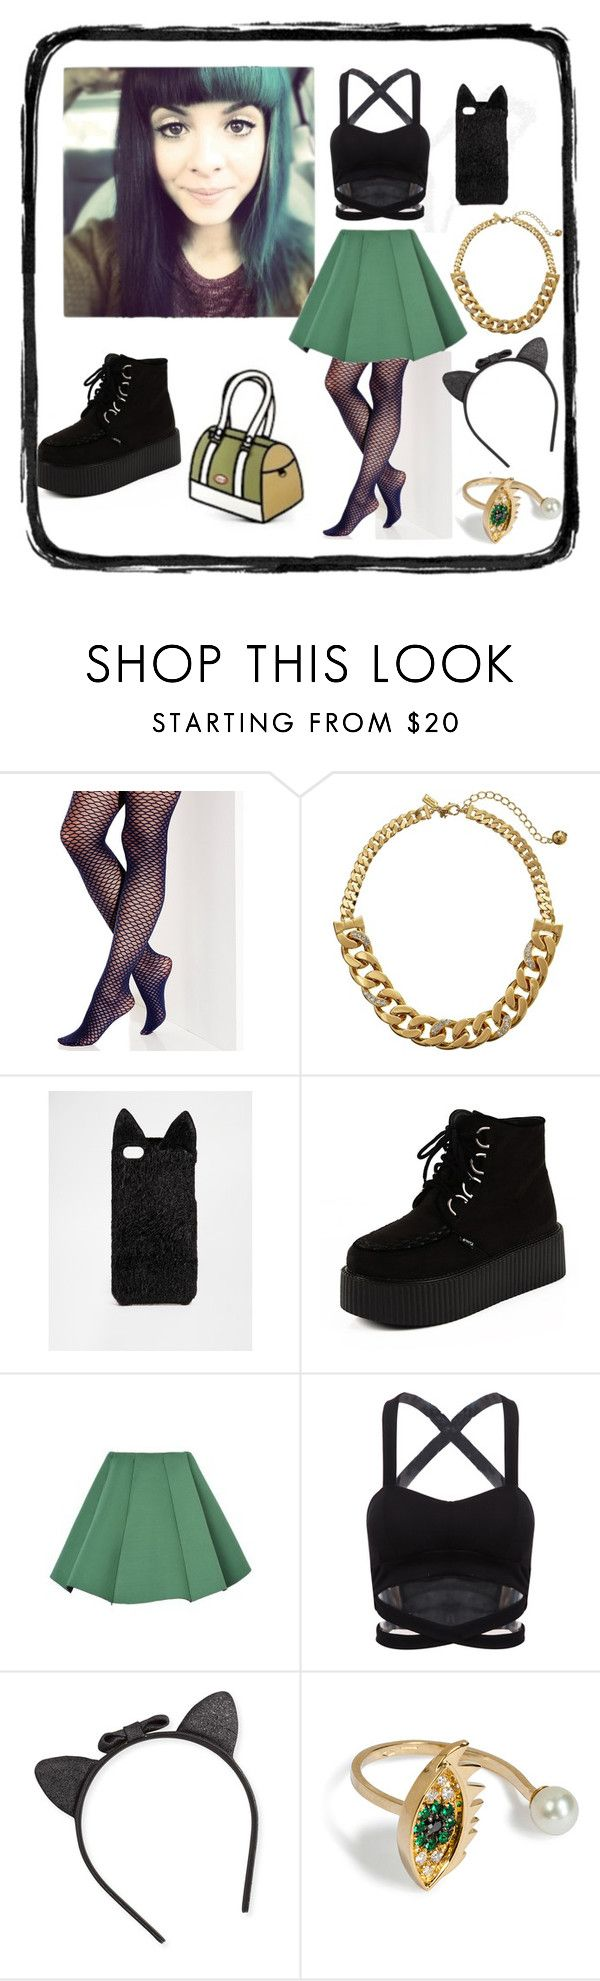 """""""Melanie Martinez Style #1"""" by meghan1 ❤ liked on Polyvore featuring Vince Camuto, Kate Spade, ASOS, Structured Green, JumpFromPaper and Delfina Delettrez"""